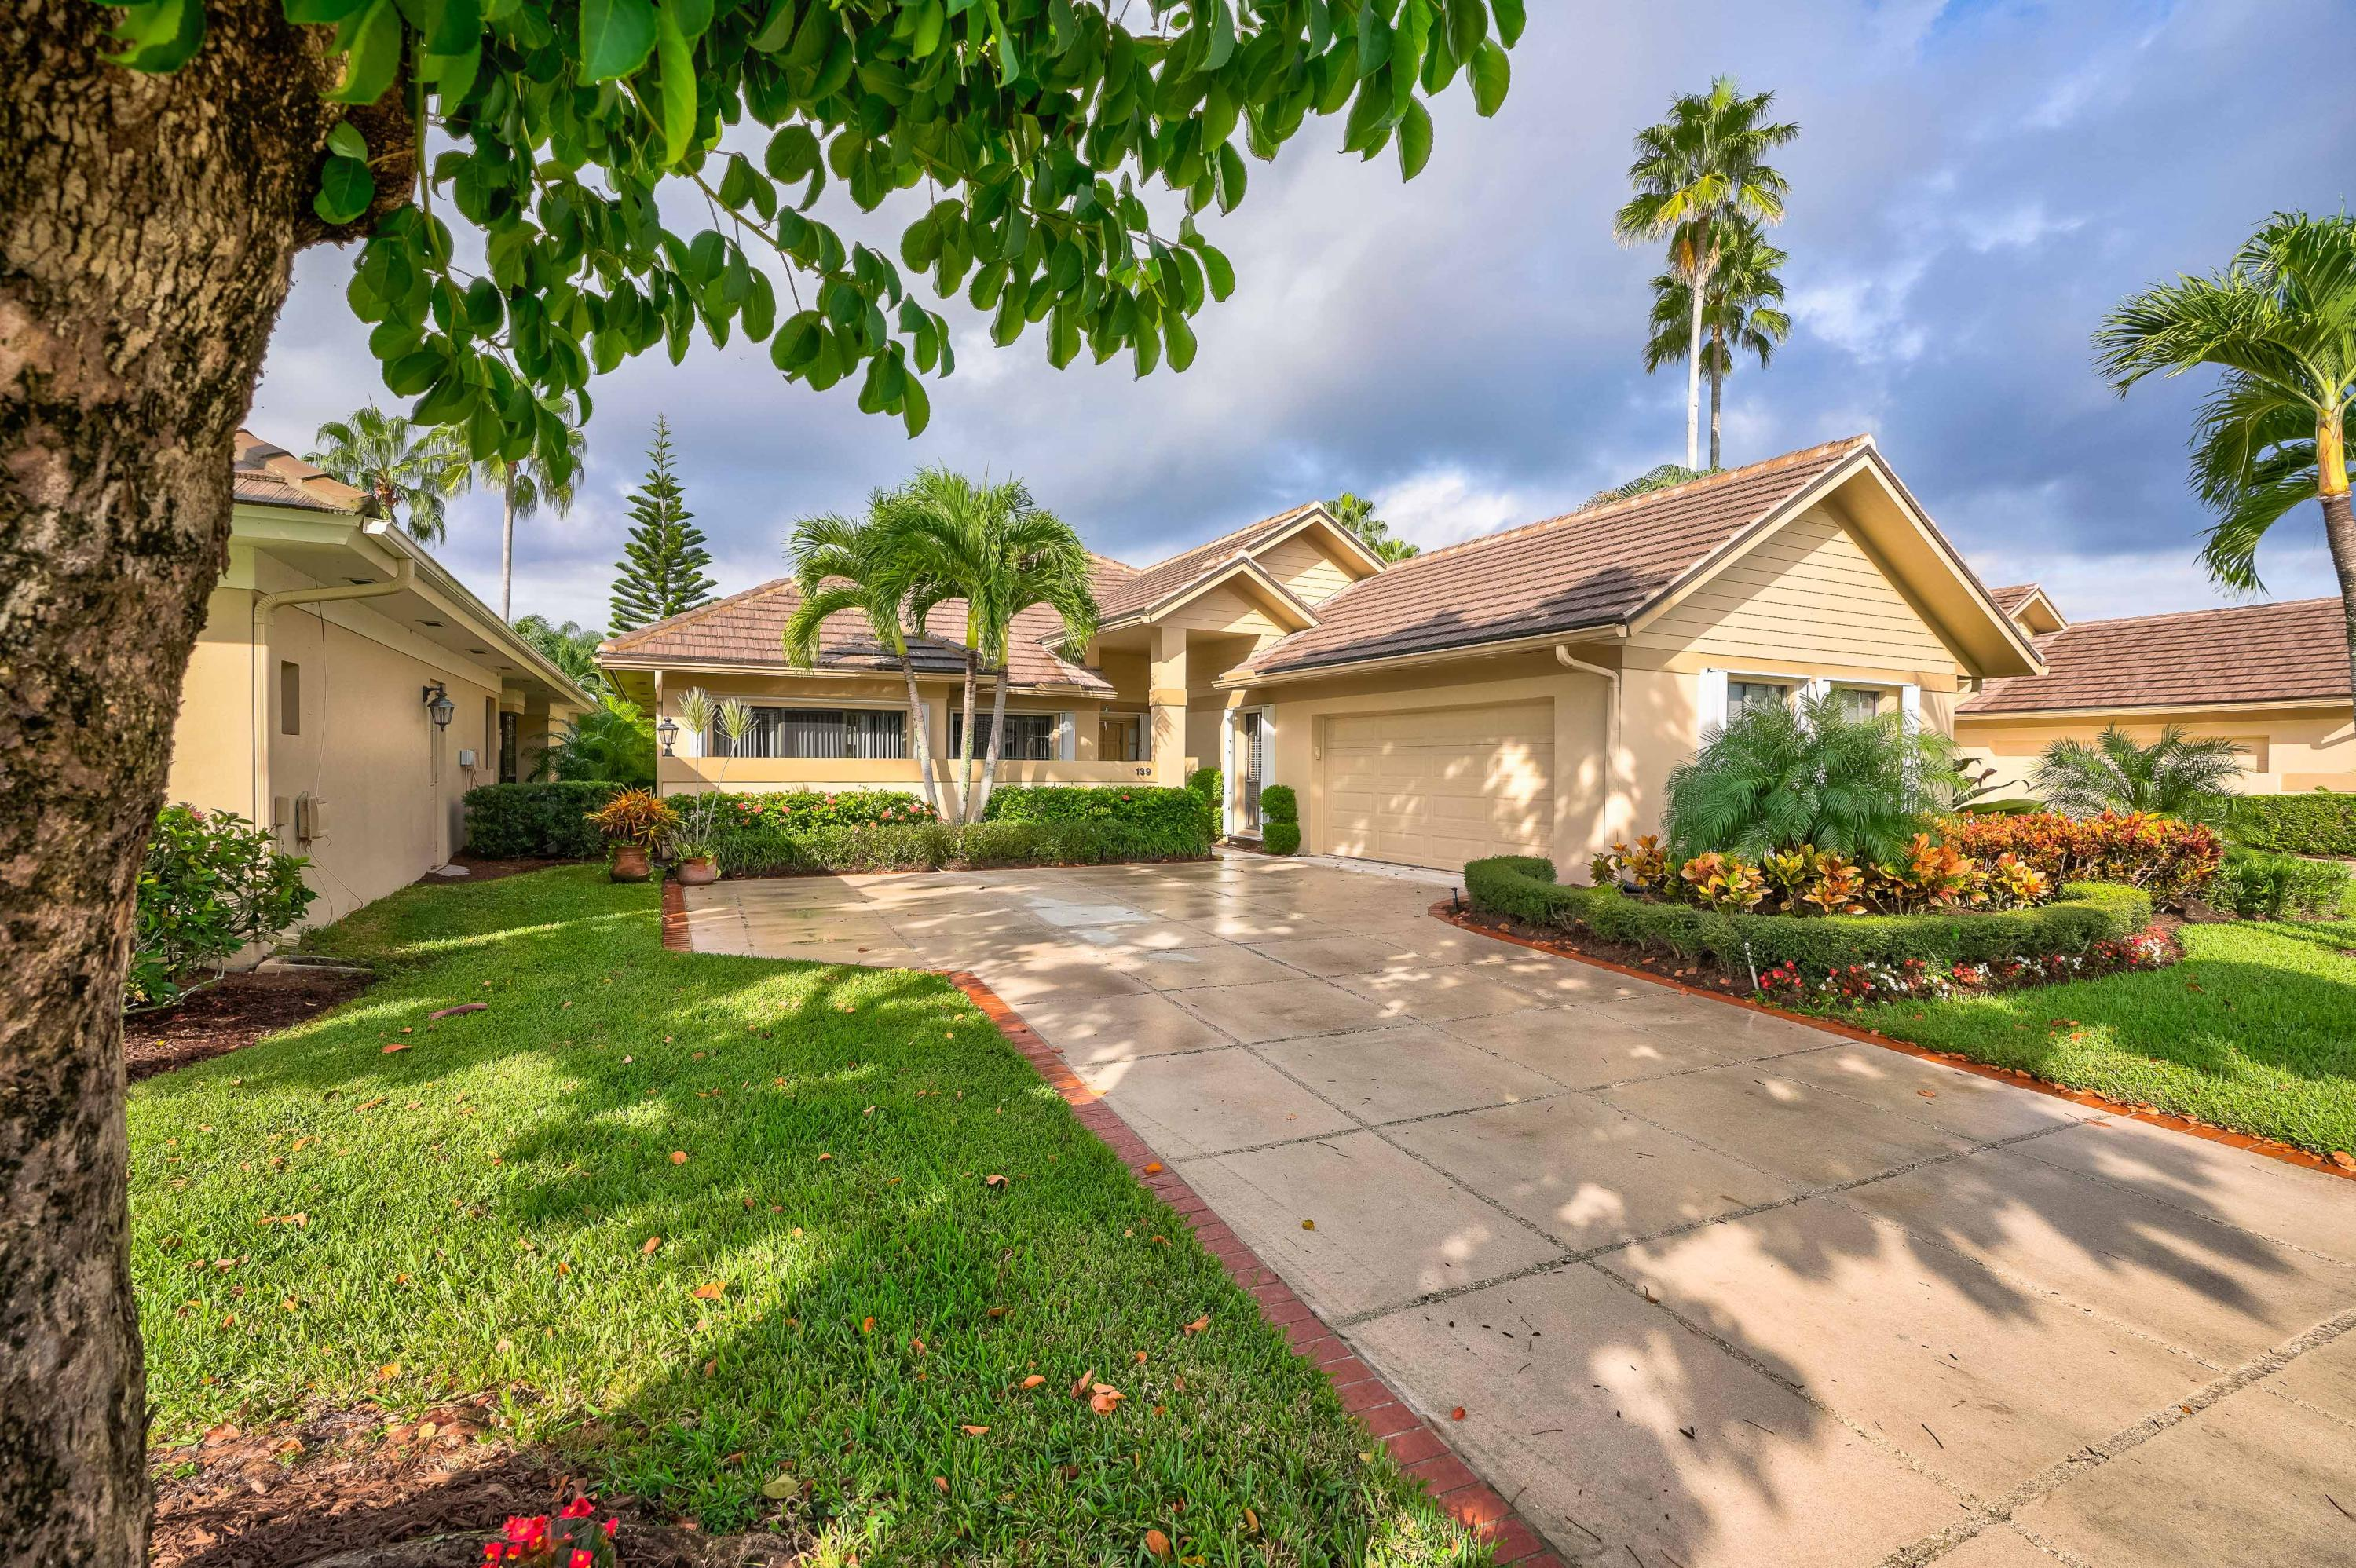 139 Coventry Place, Palm Beach Gardens, Florida 33418, 3 Bedrooms Bedrooms, ,2 BathroomsBathrooms,A,Single family,Coventry,RX-10480894